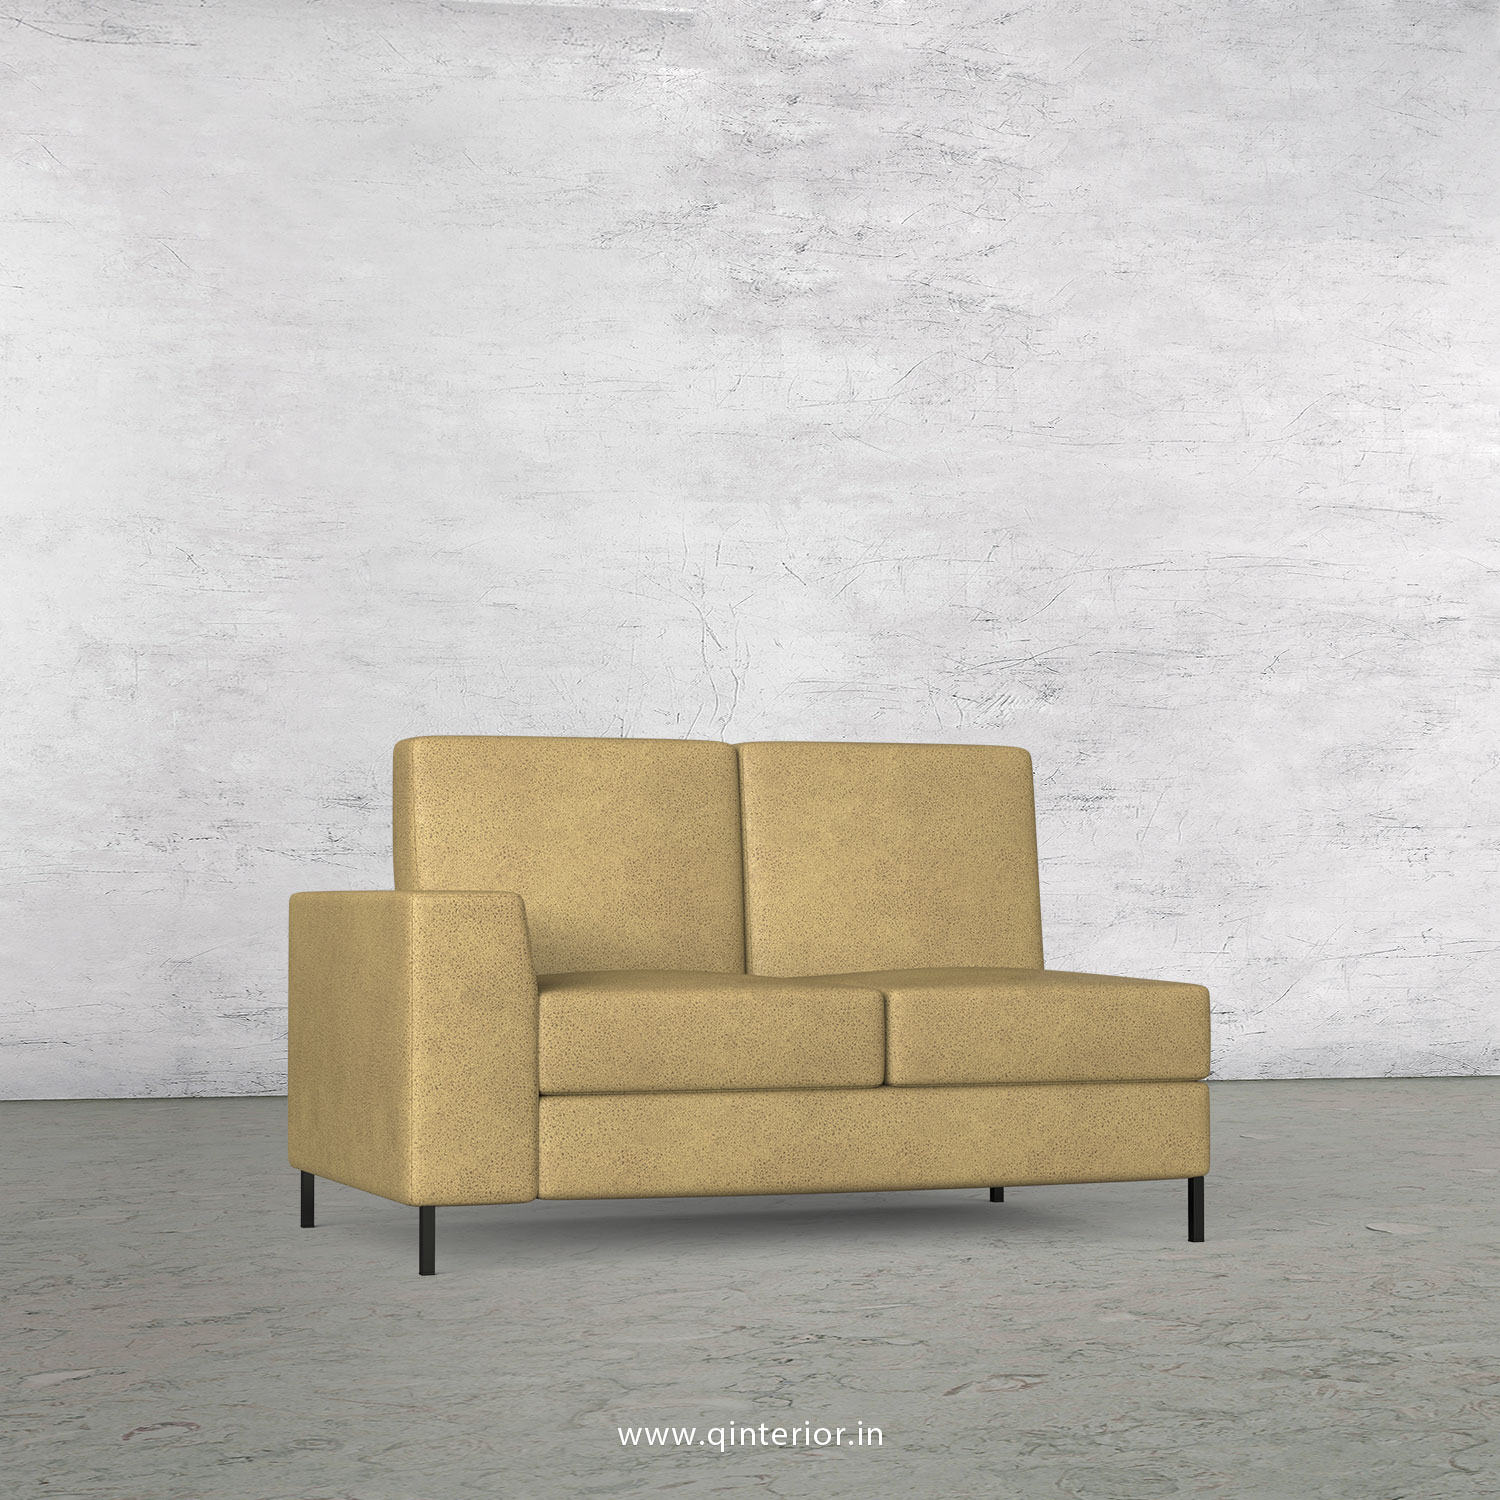 Viva 2 Seater Modular Sofa in Fab Leather Fabric - MSFA002 FL01